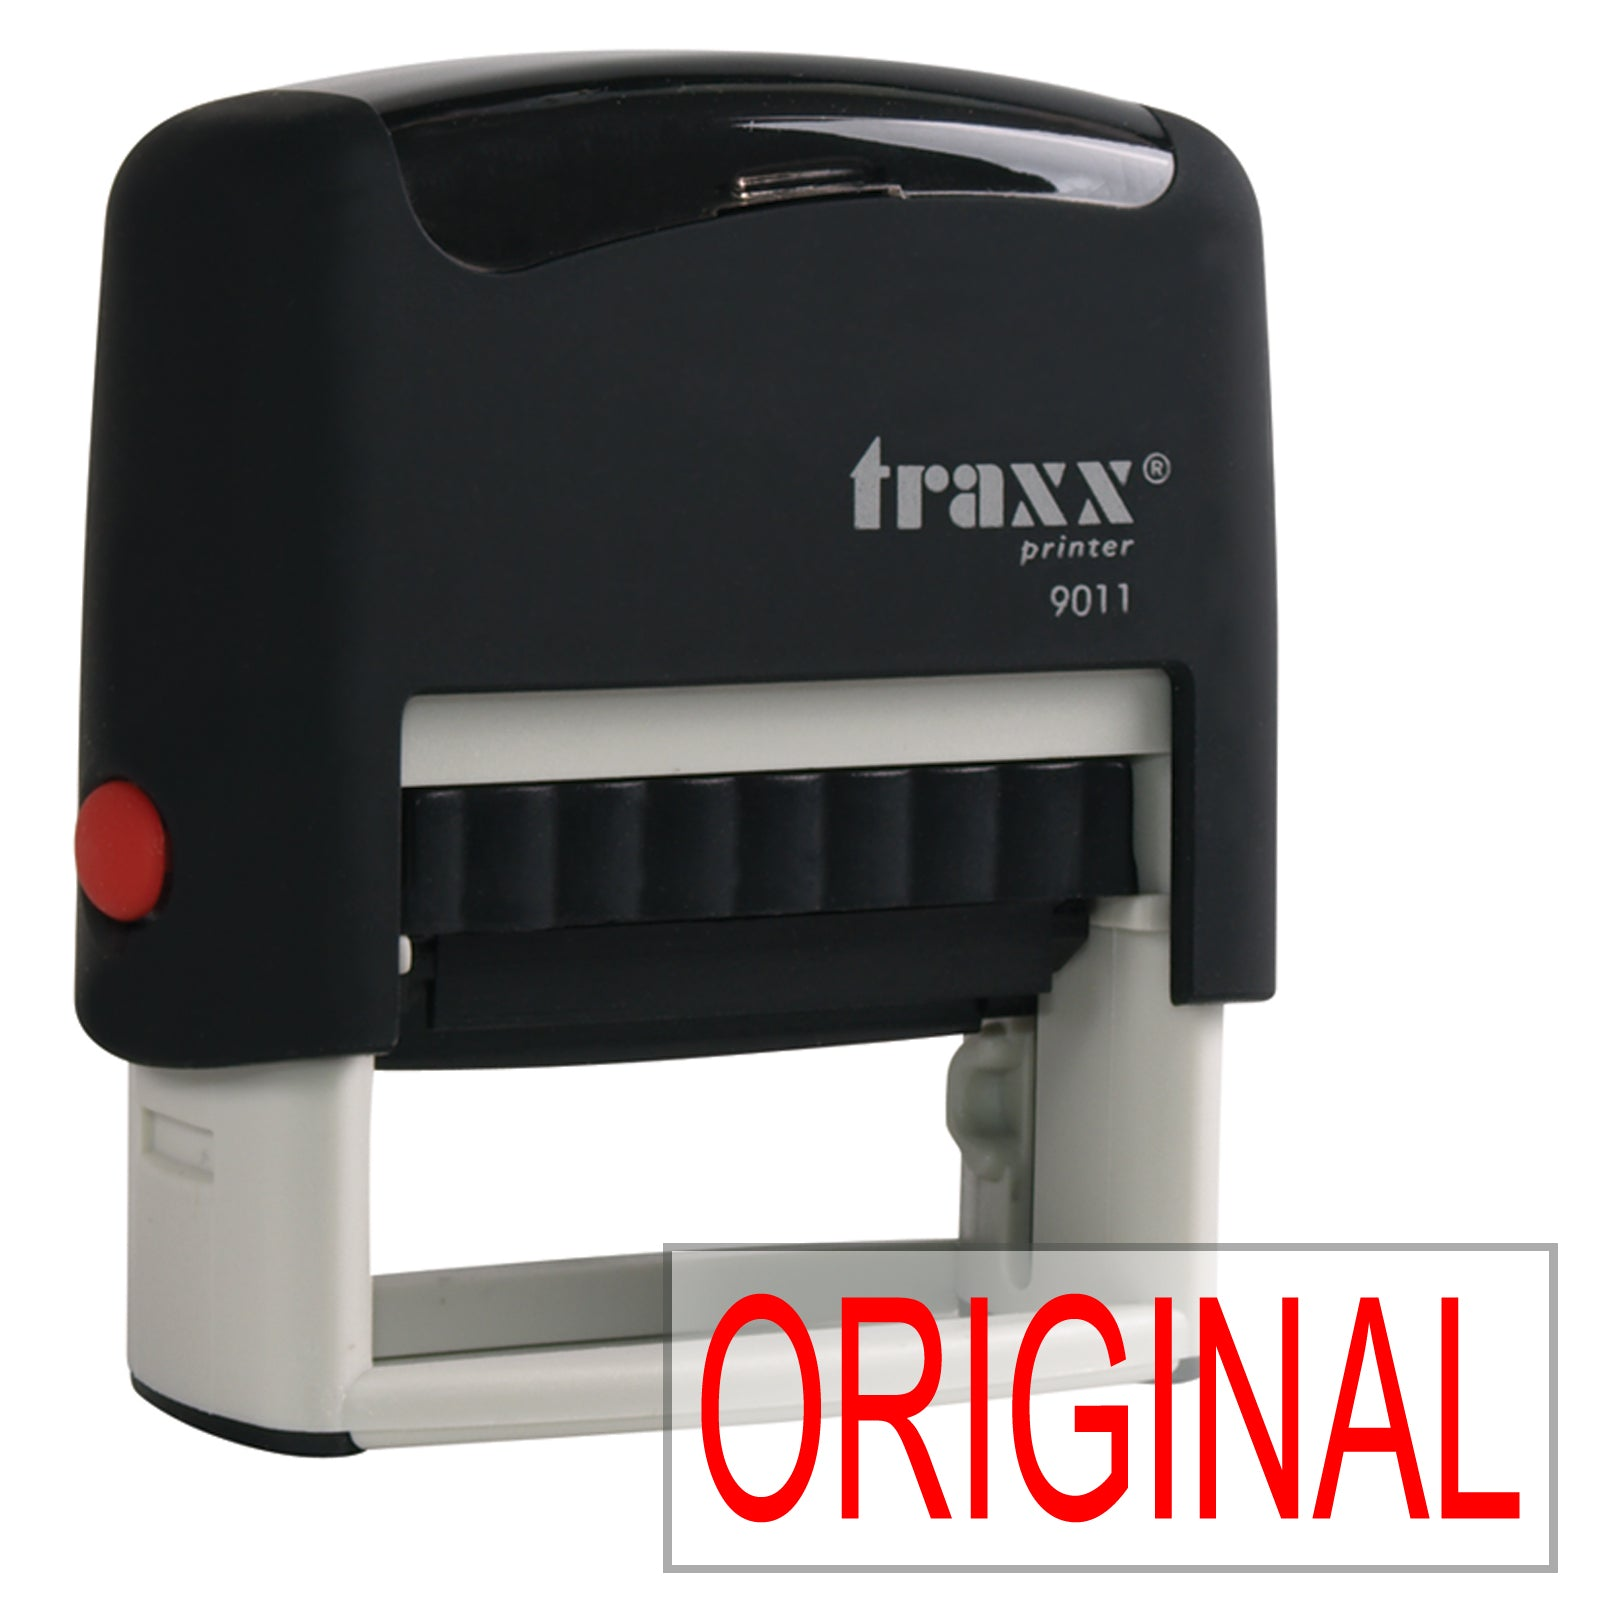 Traxx 9011 38 x 14mm Word Stamp - ORIGINAL.